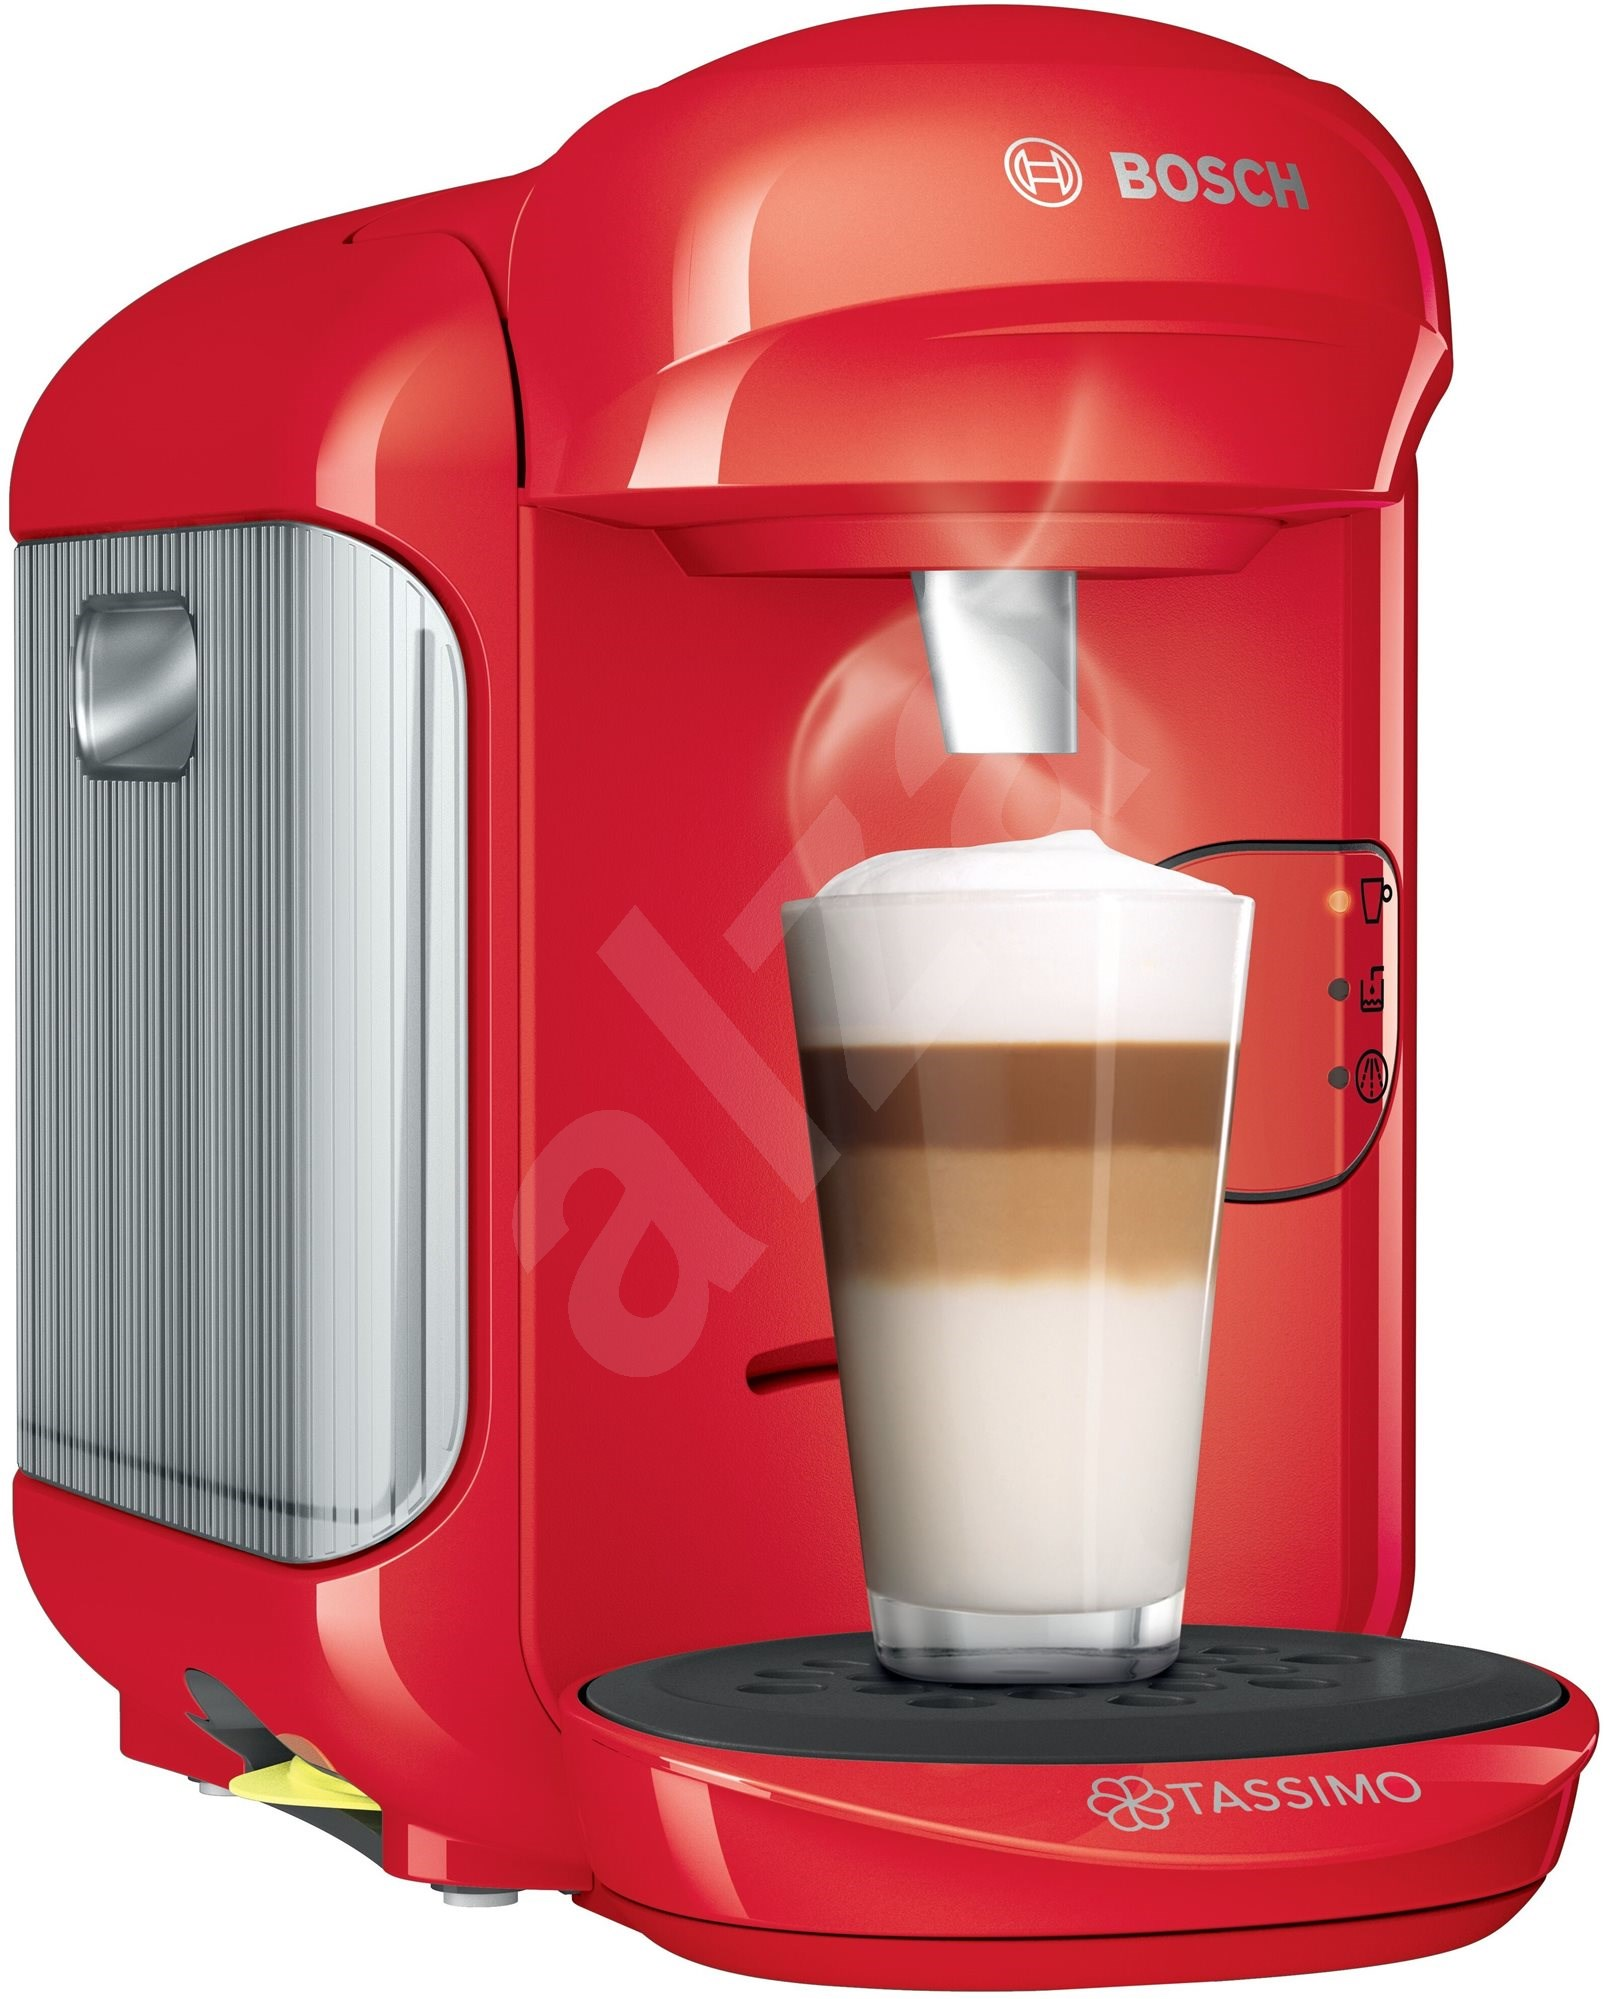 bosch tassimo tas1403 capsule coffee machine. Black Bedroom Furniture Sets. Home Design Ideas